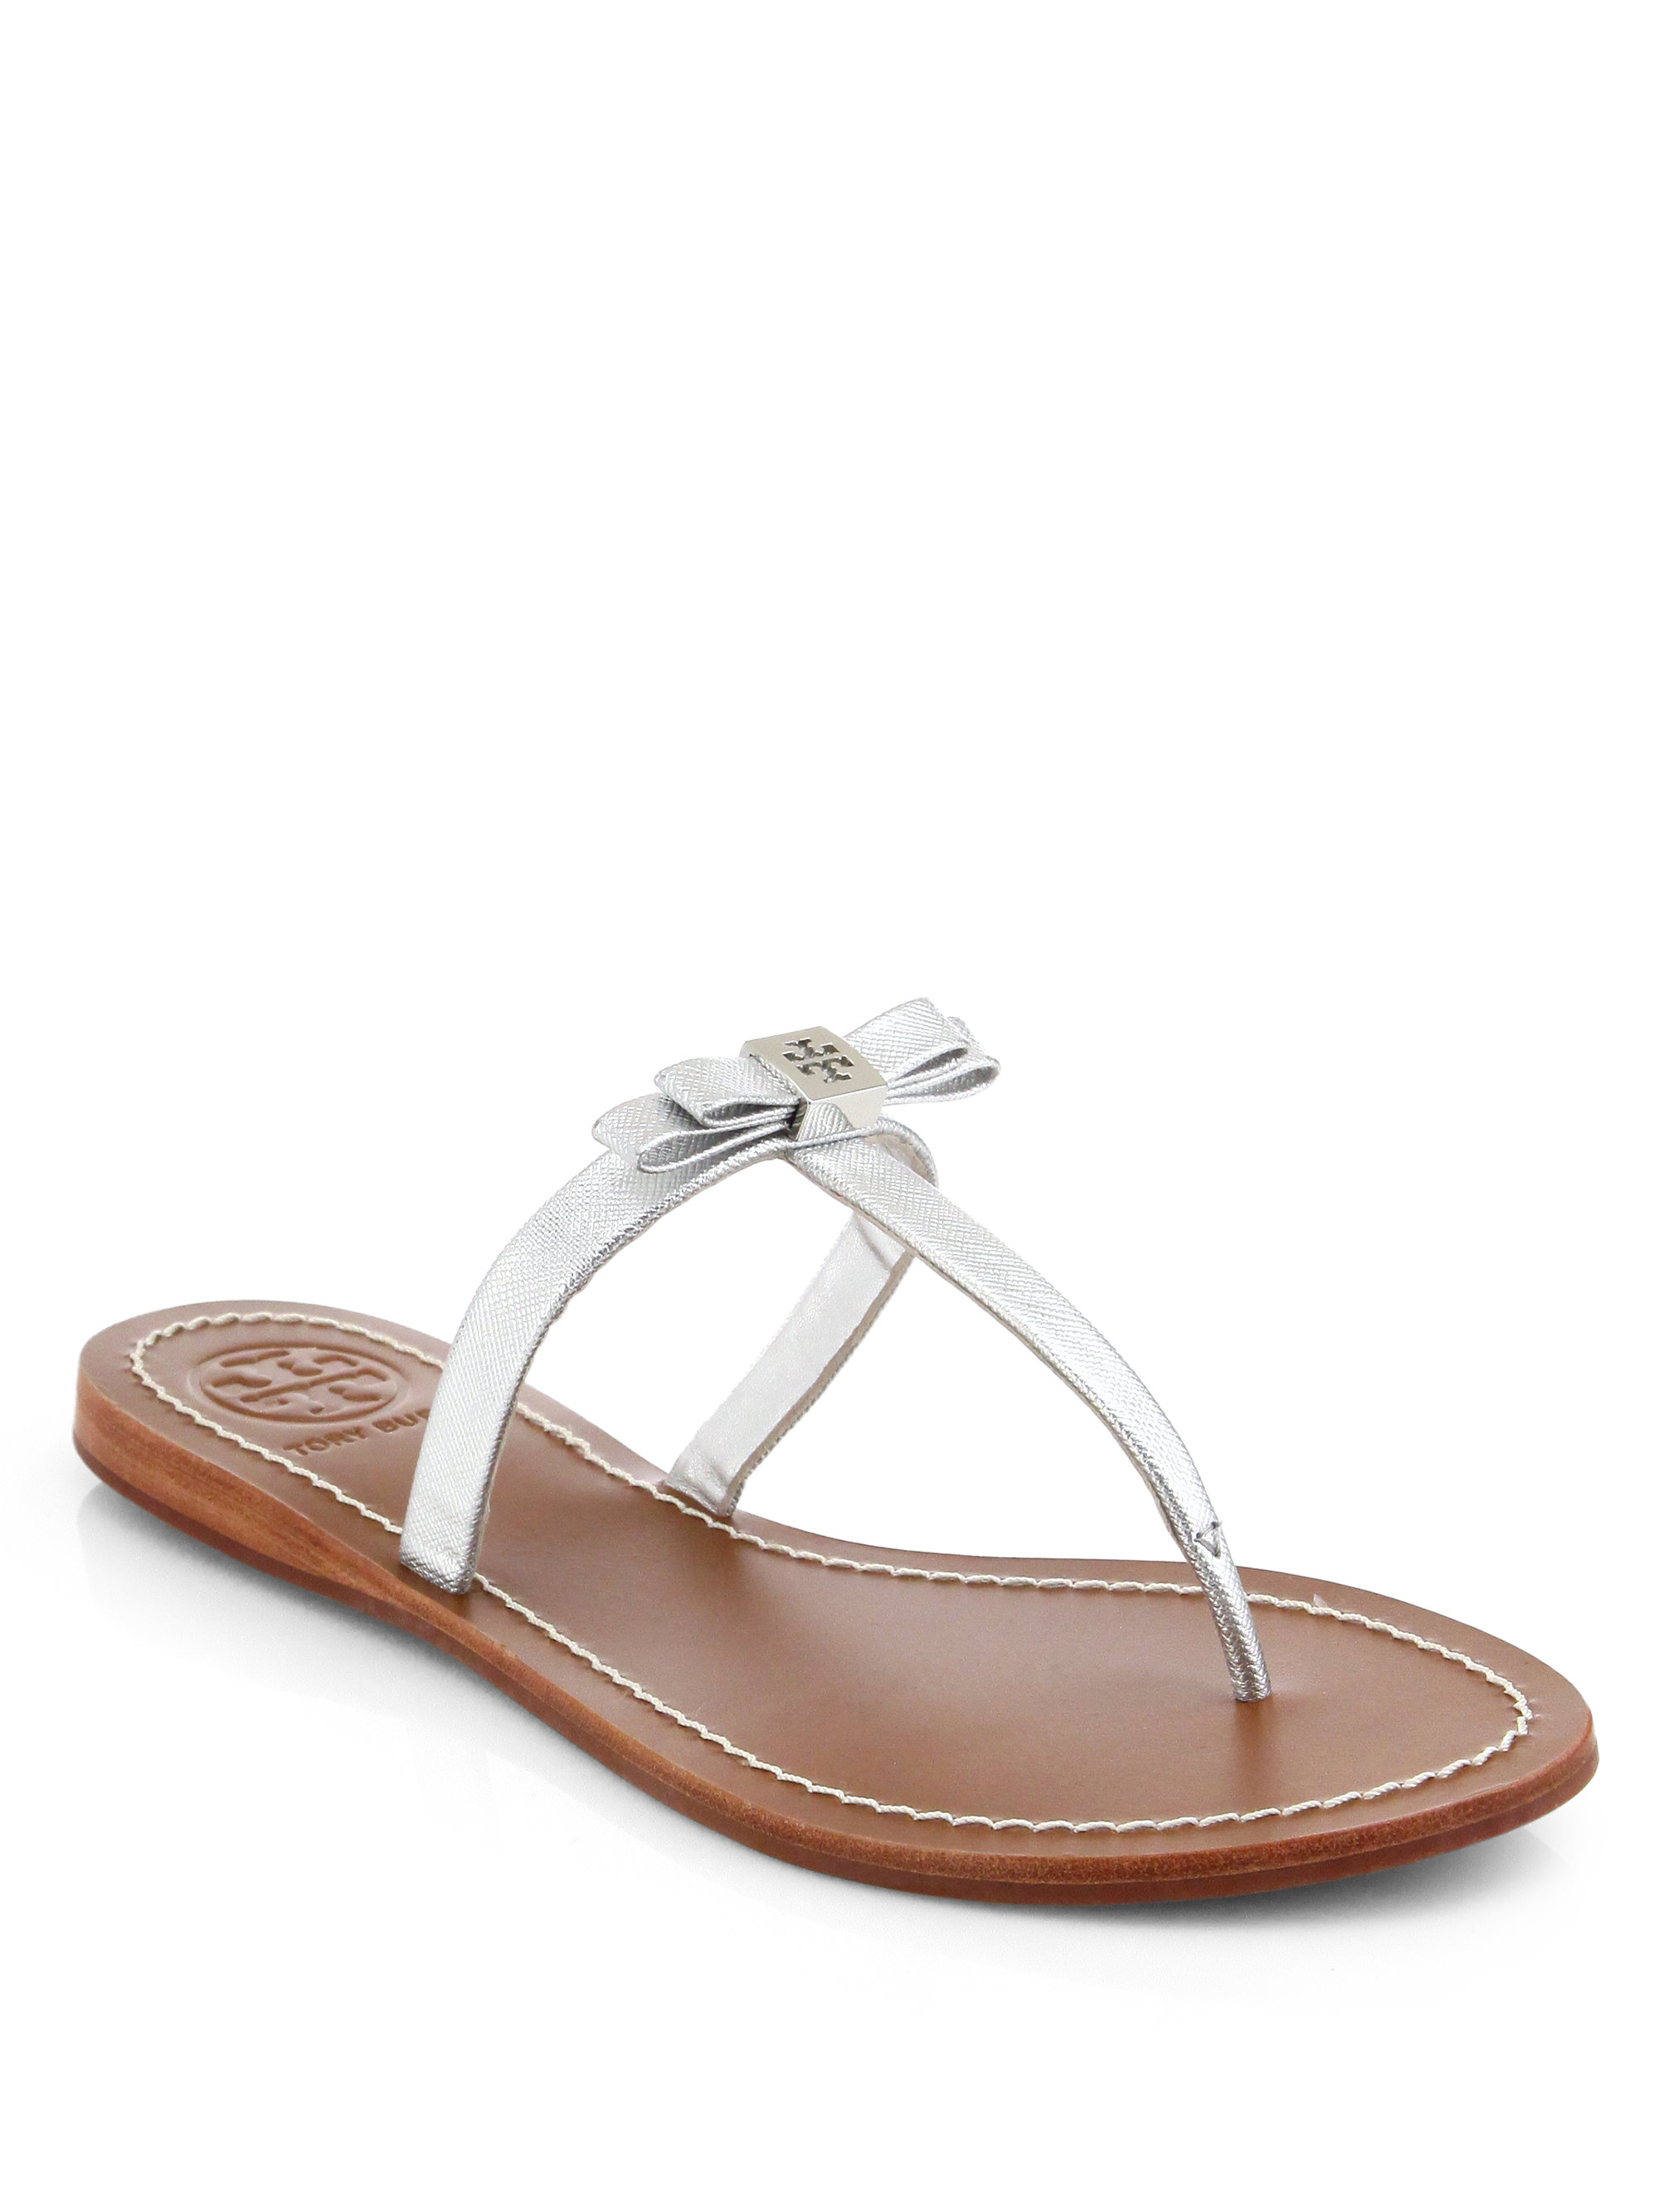 2e1ead87c14a Tory Burch Leighanne Metallic Leather Thong Sandals in Metallic - Lyst